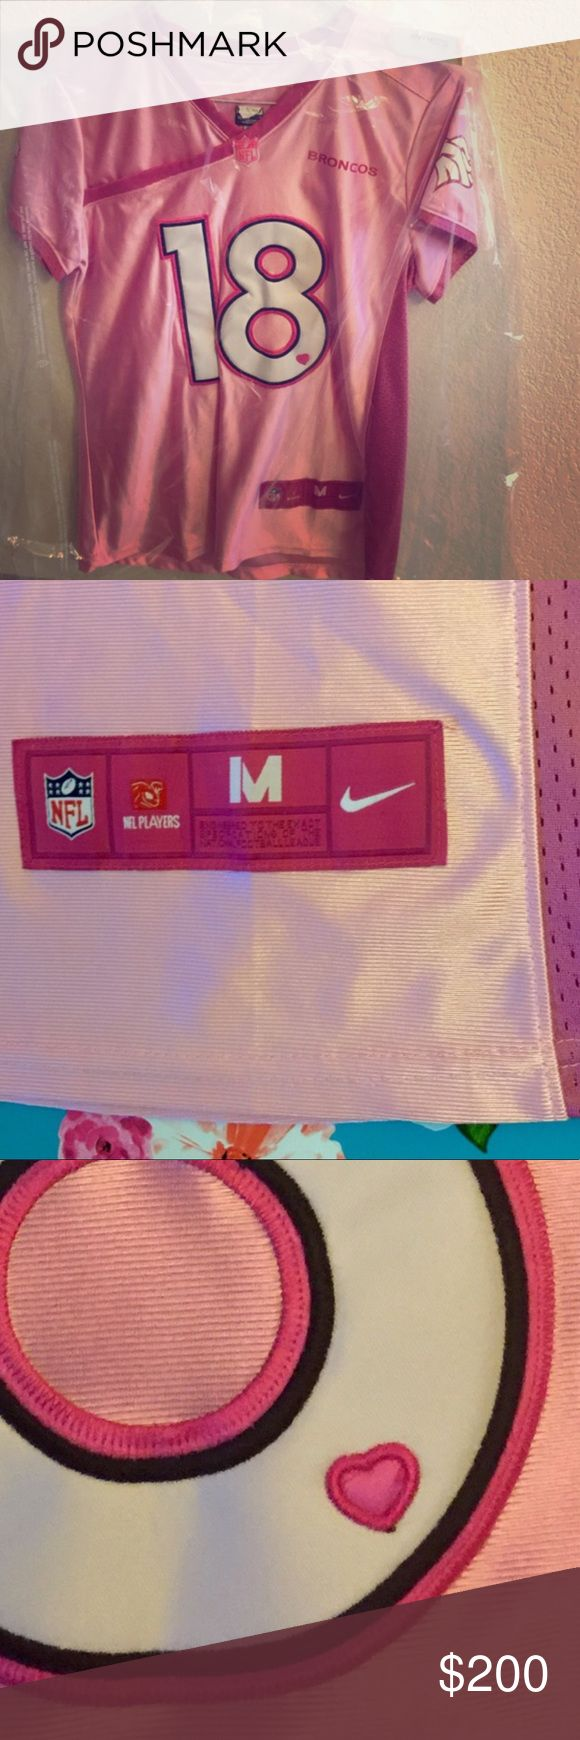 Cute!! Pink Payton manning jersey Priced for offers - just ask 💗 Worn only a handful of times! Authentic, pink Payton manning jersey. Dry cleaned last season and been hanging in the dry cleaning bag since. Super cute, flattering fit!!!! Unique color & hearts on front and back logo 💗 size med Nike Tops